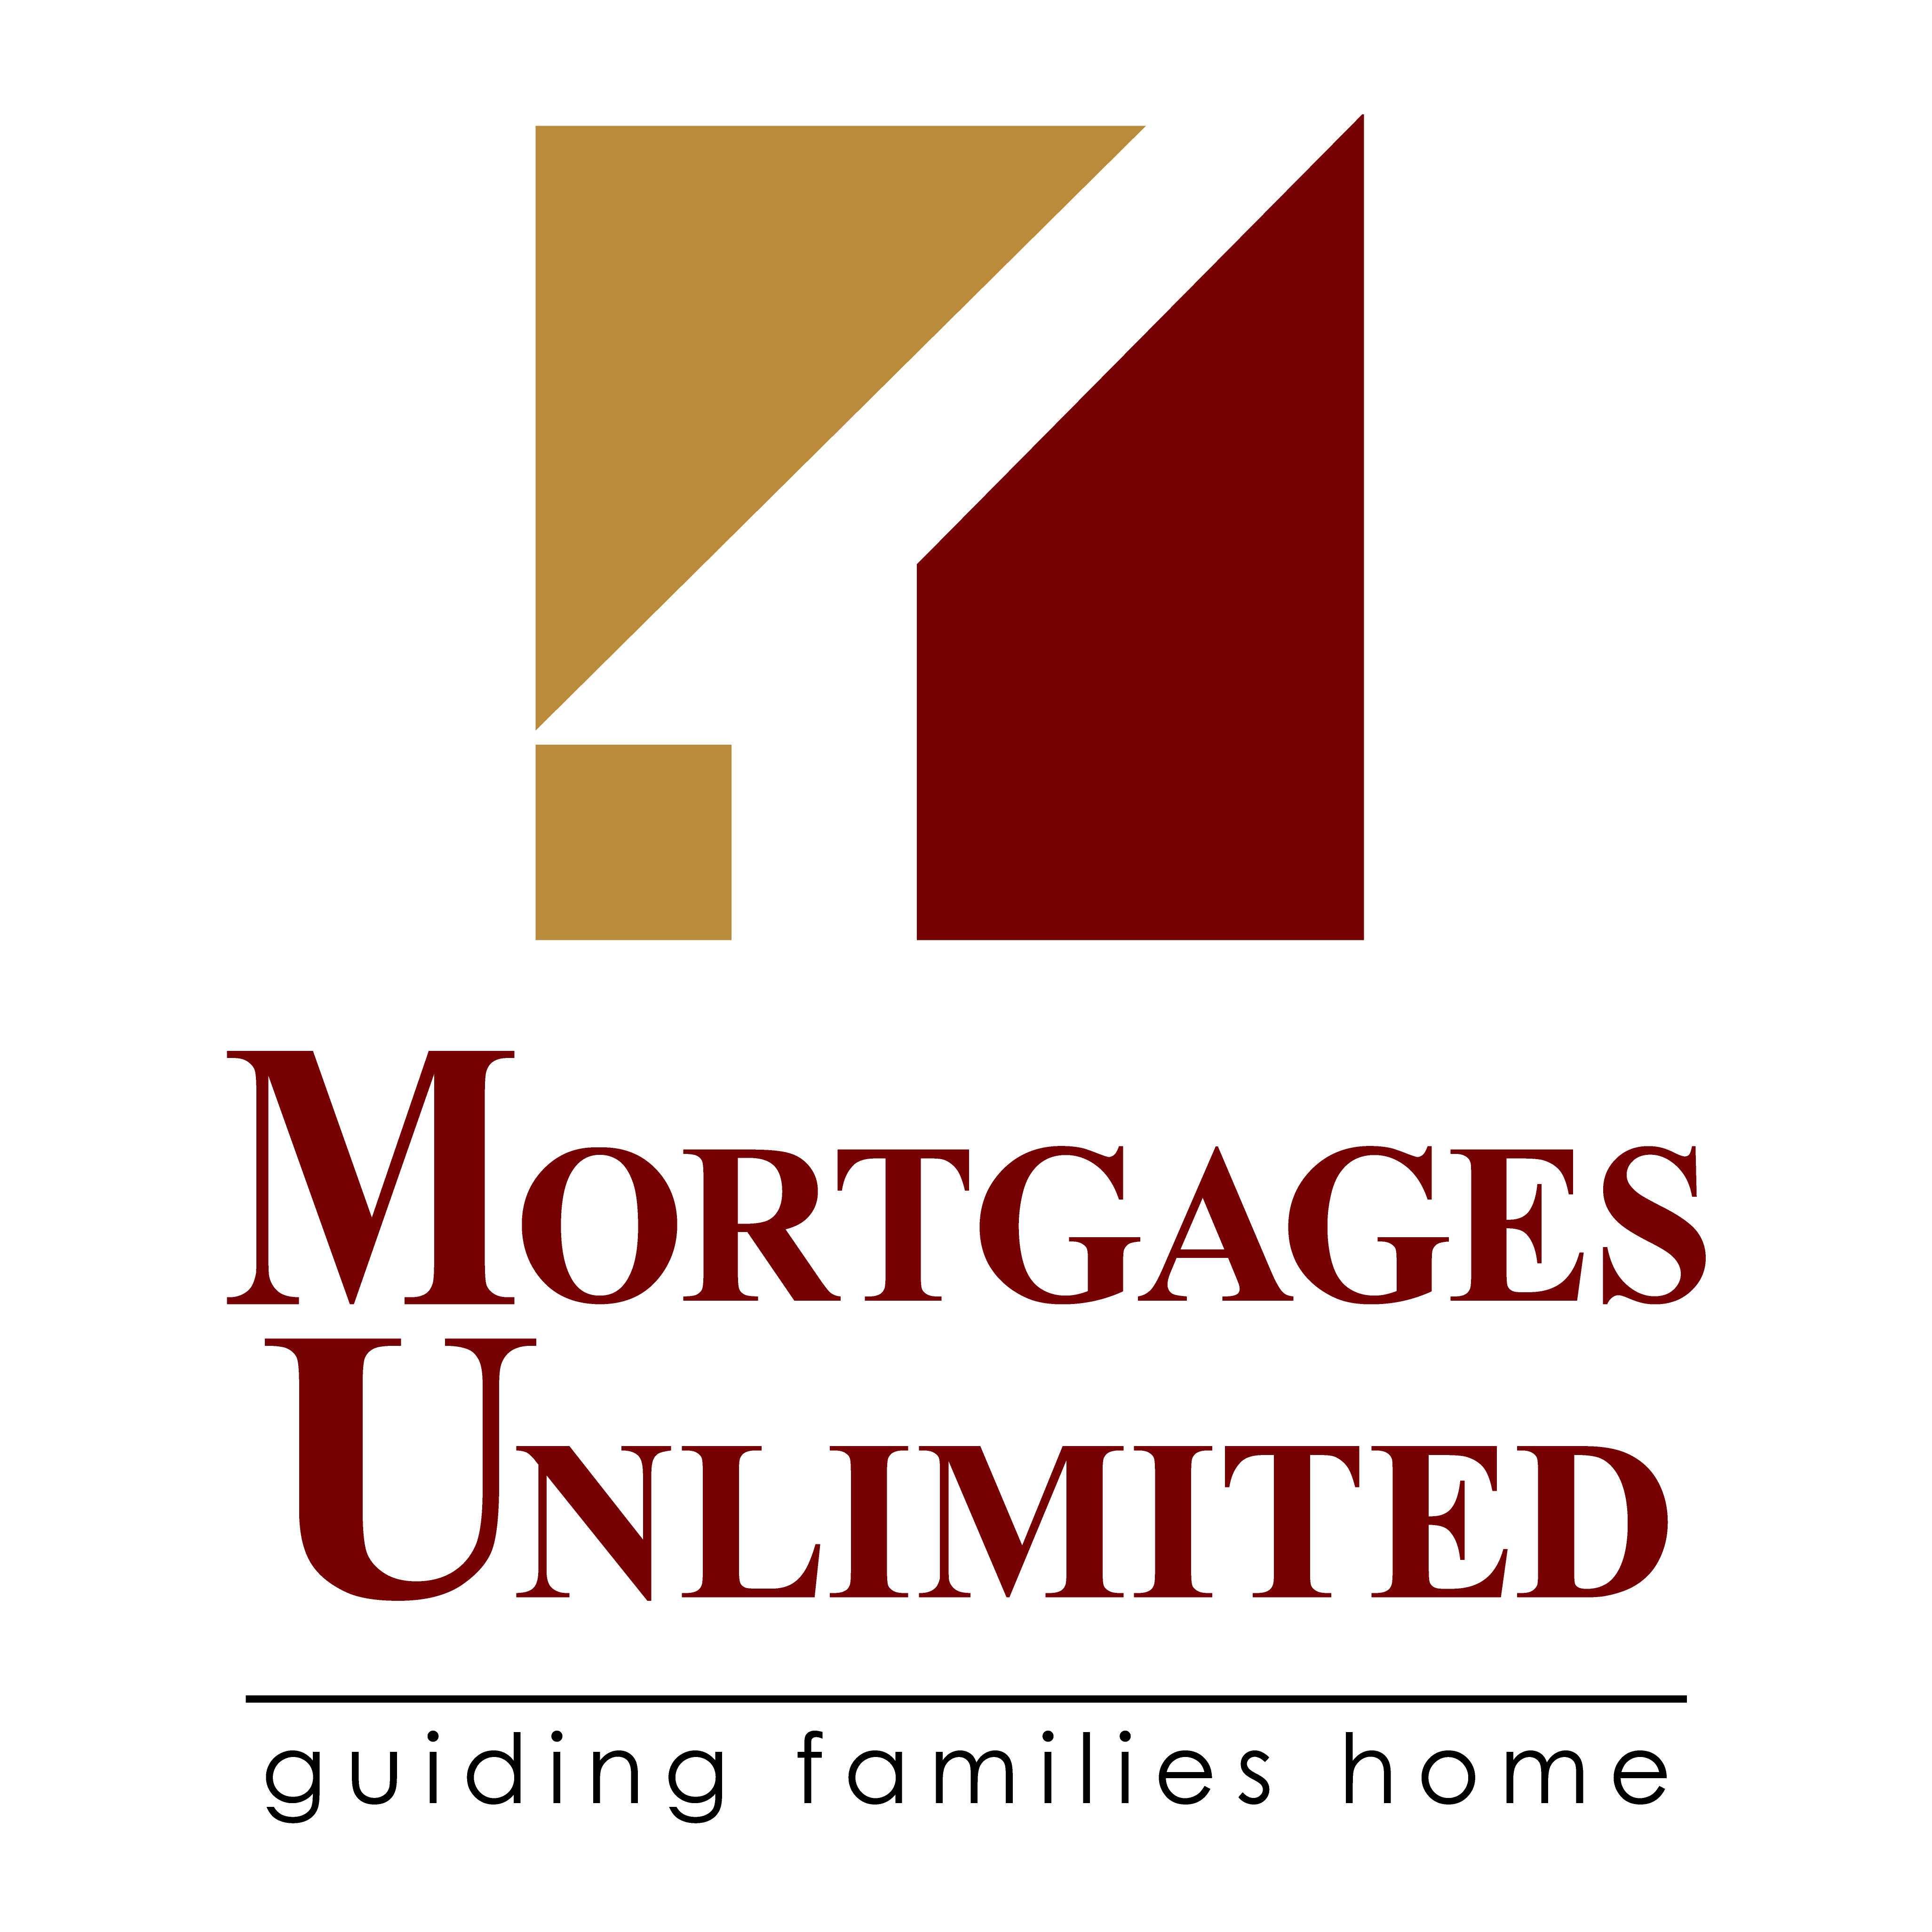 James Vang - Mortgages Unlimited